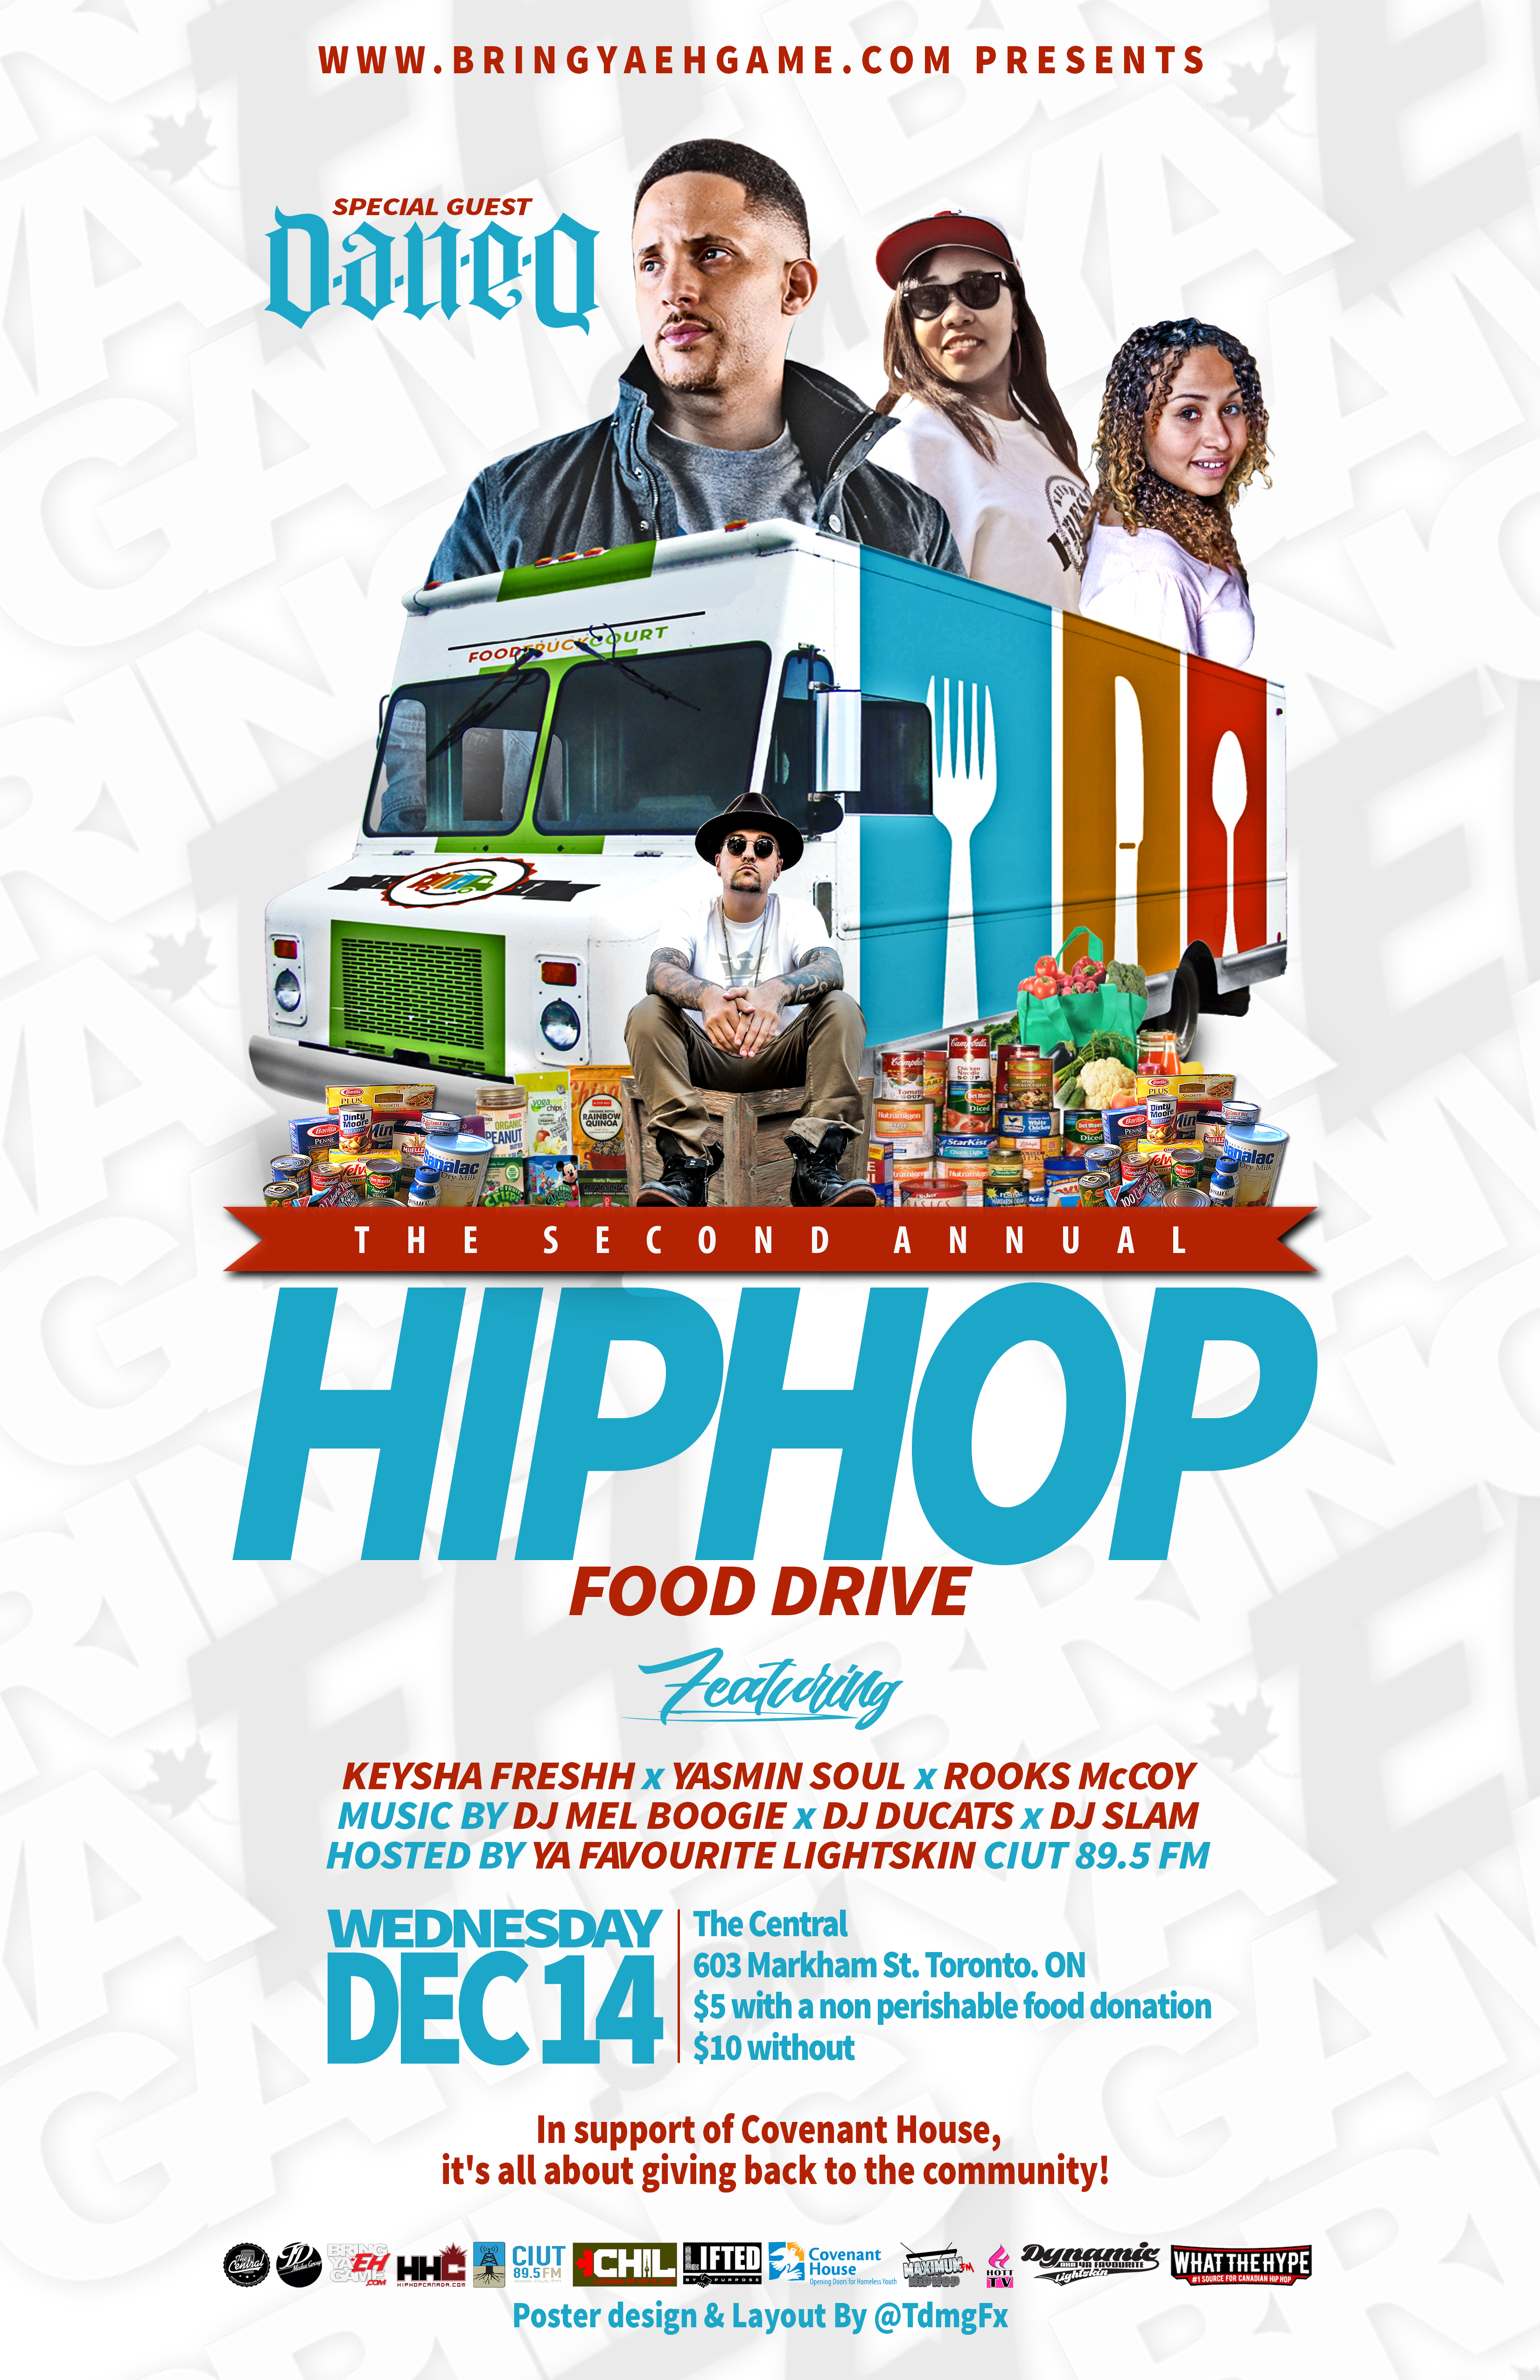 The 2nd Annual Hip Hop Food Drive